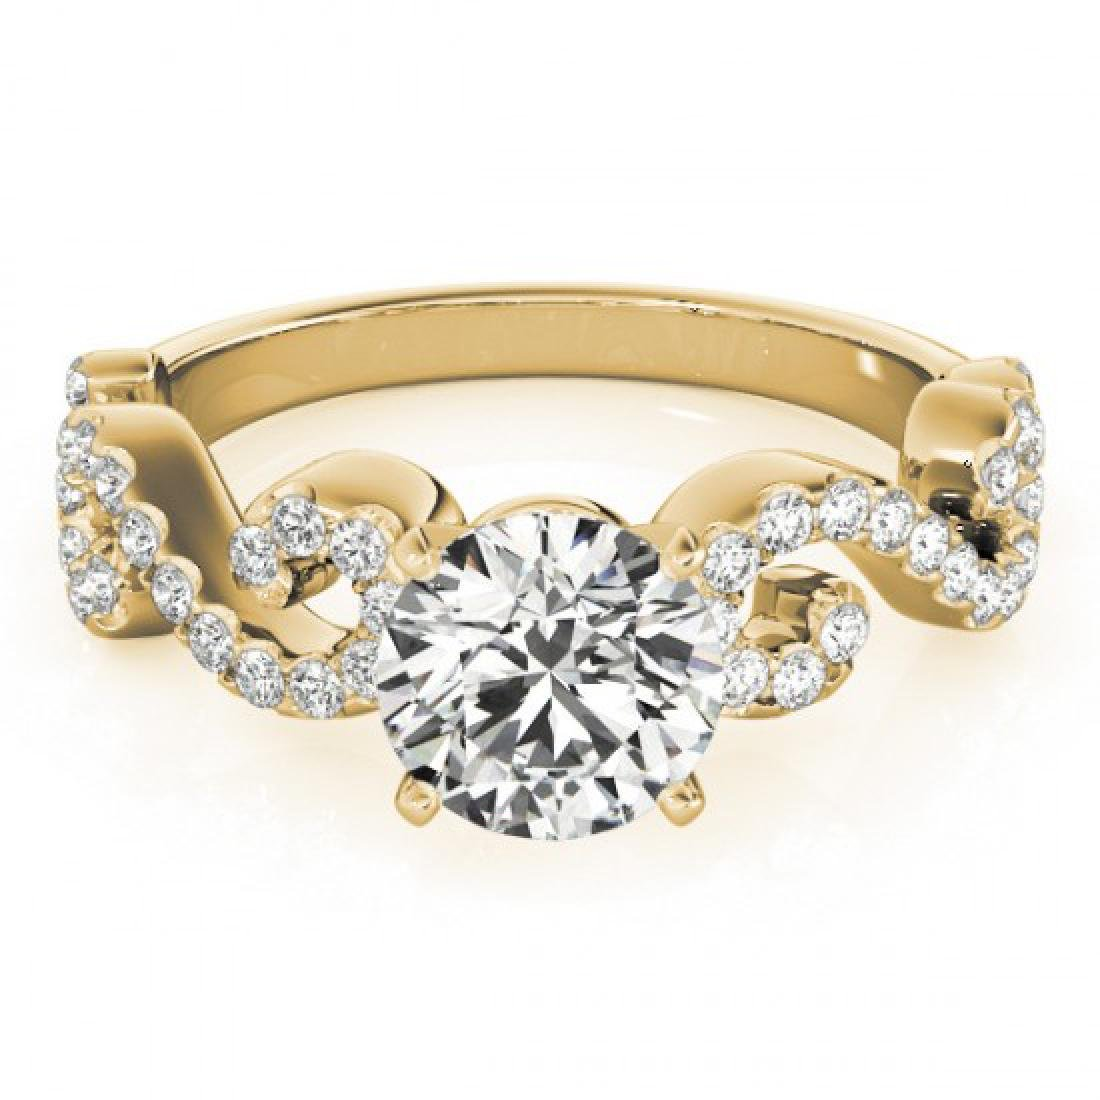 0.9 CTW Certified VS/SI Diamond Solitaire Ring 14K